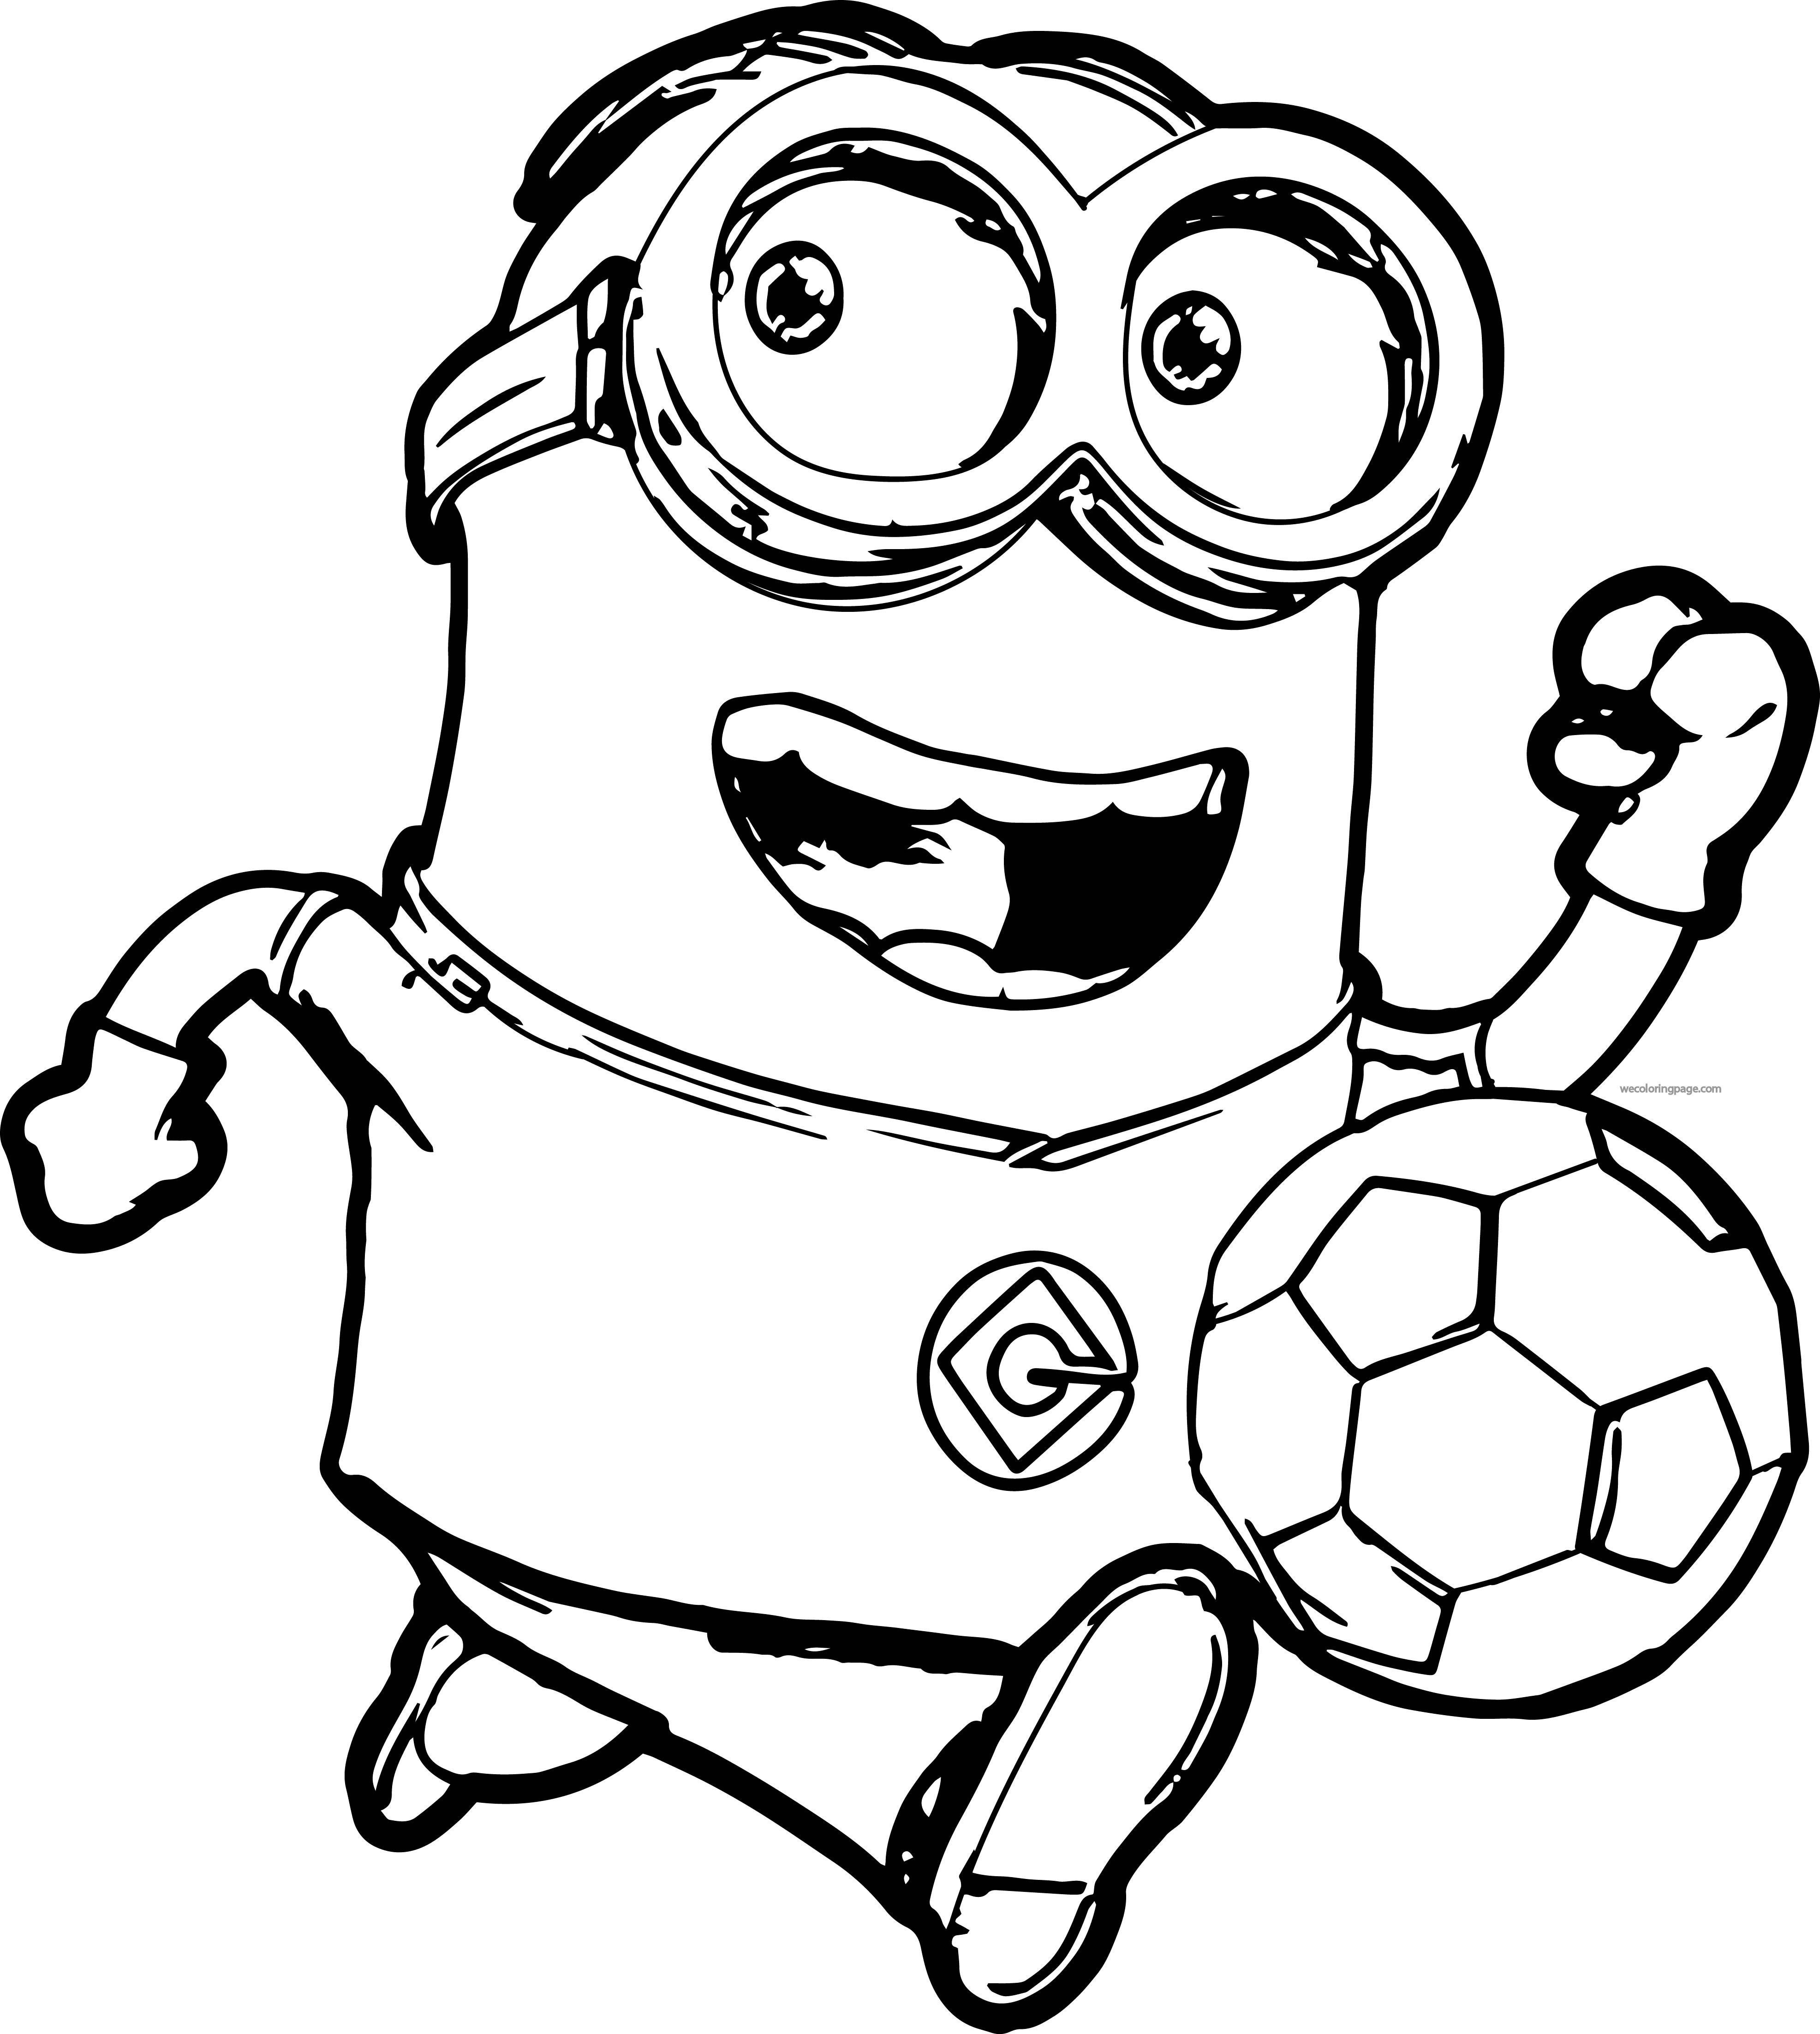 Minion Coloring Sheets To Print Minion Coloring Pages Printable Minion Coloring Pages Prin Minion Coloring Pages Minions Coloring Pages Sports Coloring Pages